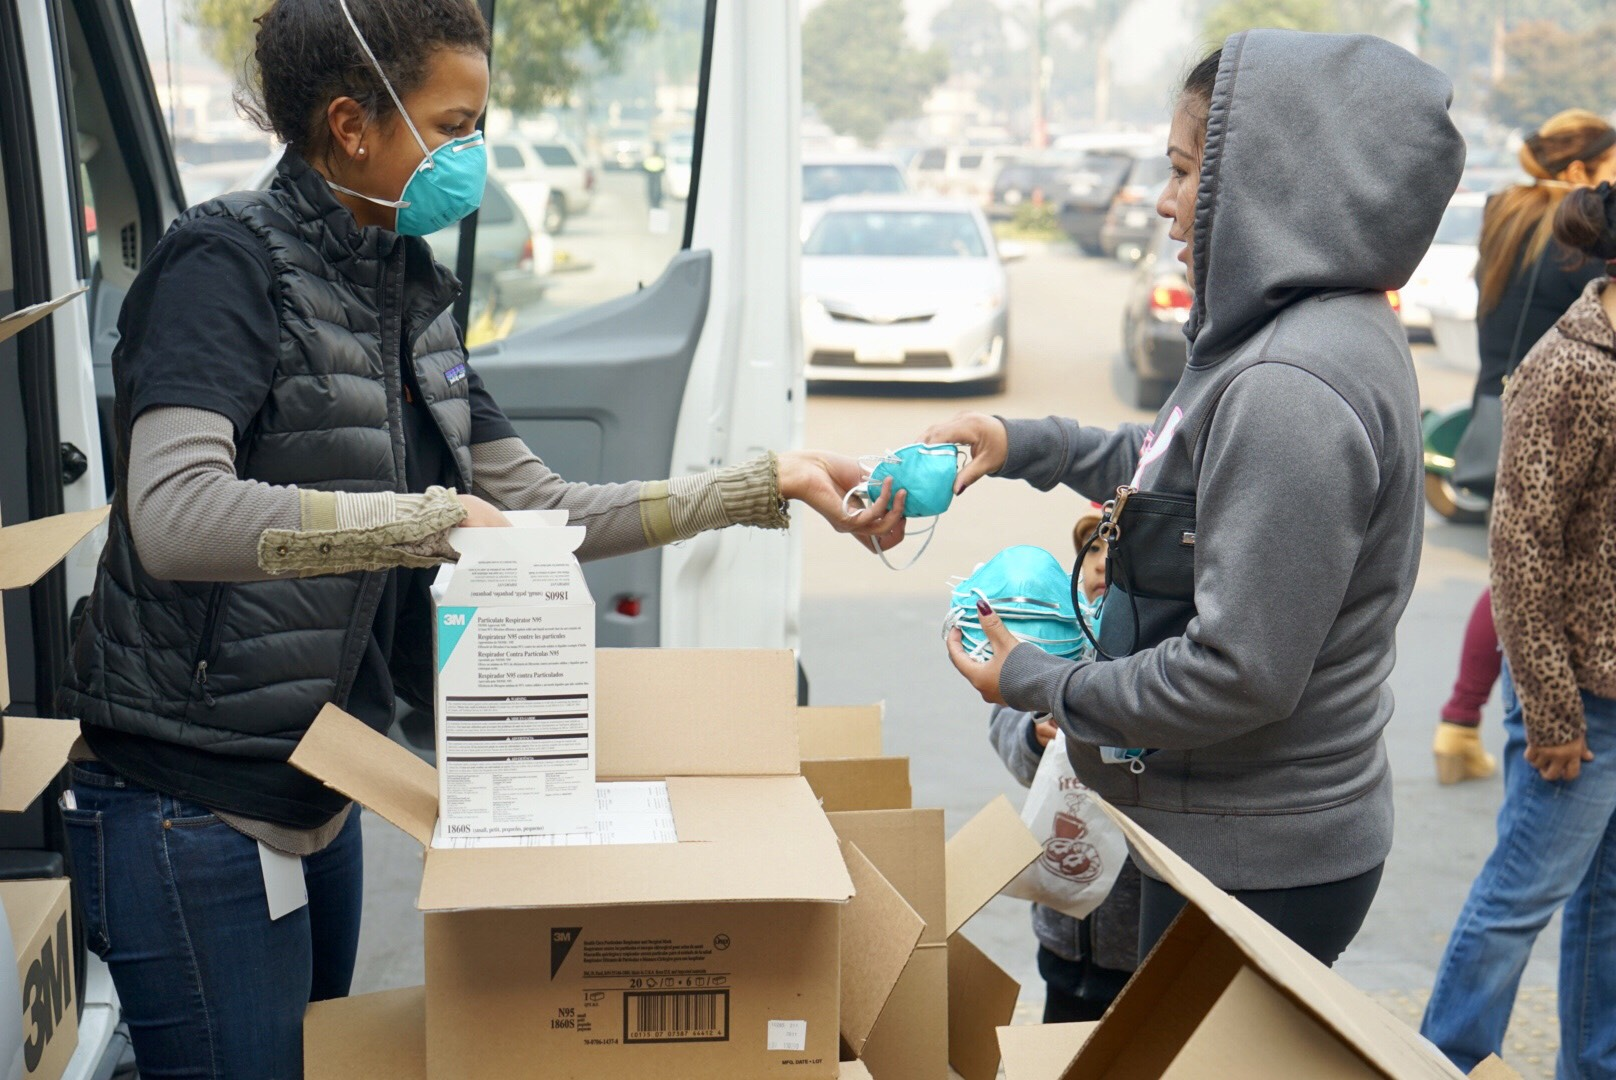 Direct Relief staffer Bryn Blanks distributes breathing masks in Carpinteria Friday morning. More than 90,000 masks have been distributed to communities impacted by wildfires this week. (Lara Cooper/Direct Relief)